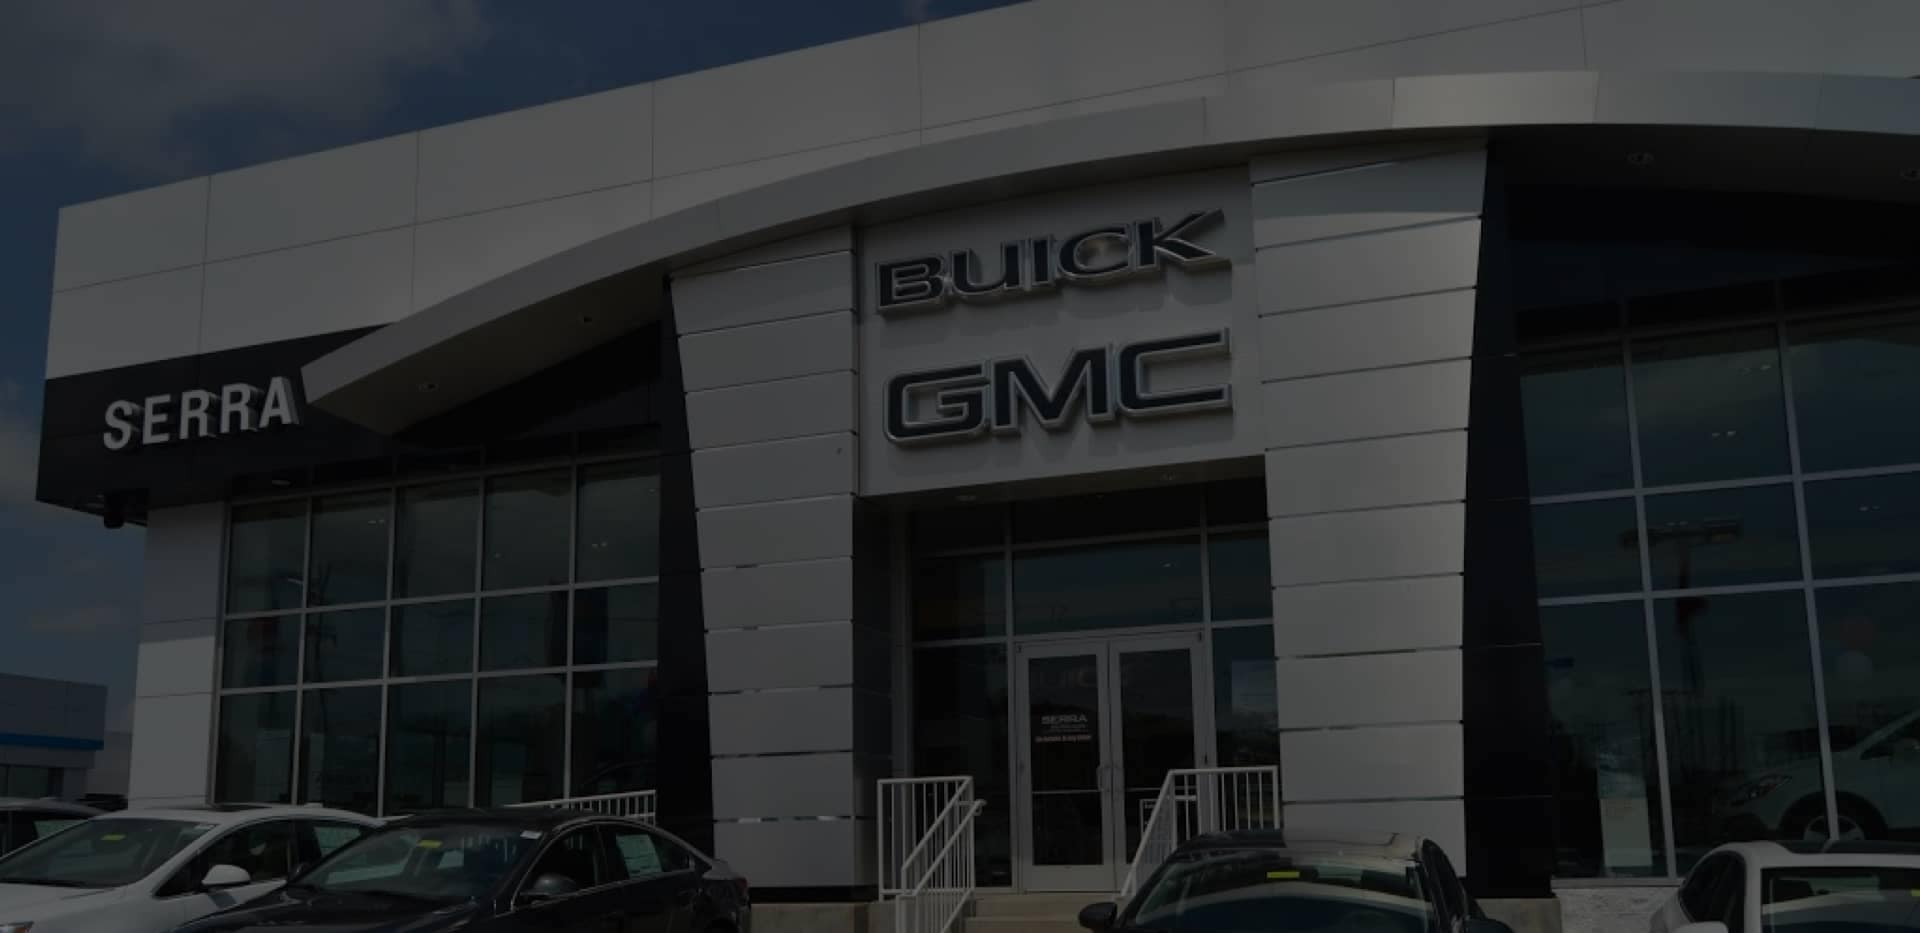 Serra Chevrolet Buick Gmc Jackson New And Used Car Dealer Serving Lexington Tn